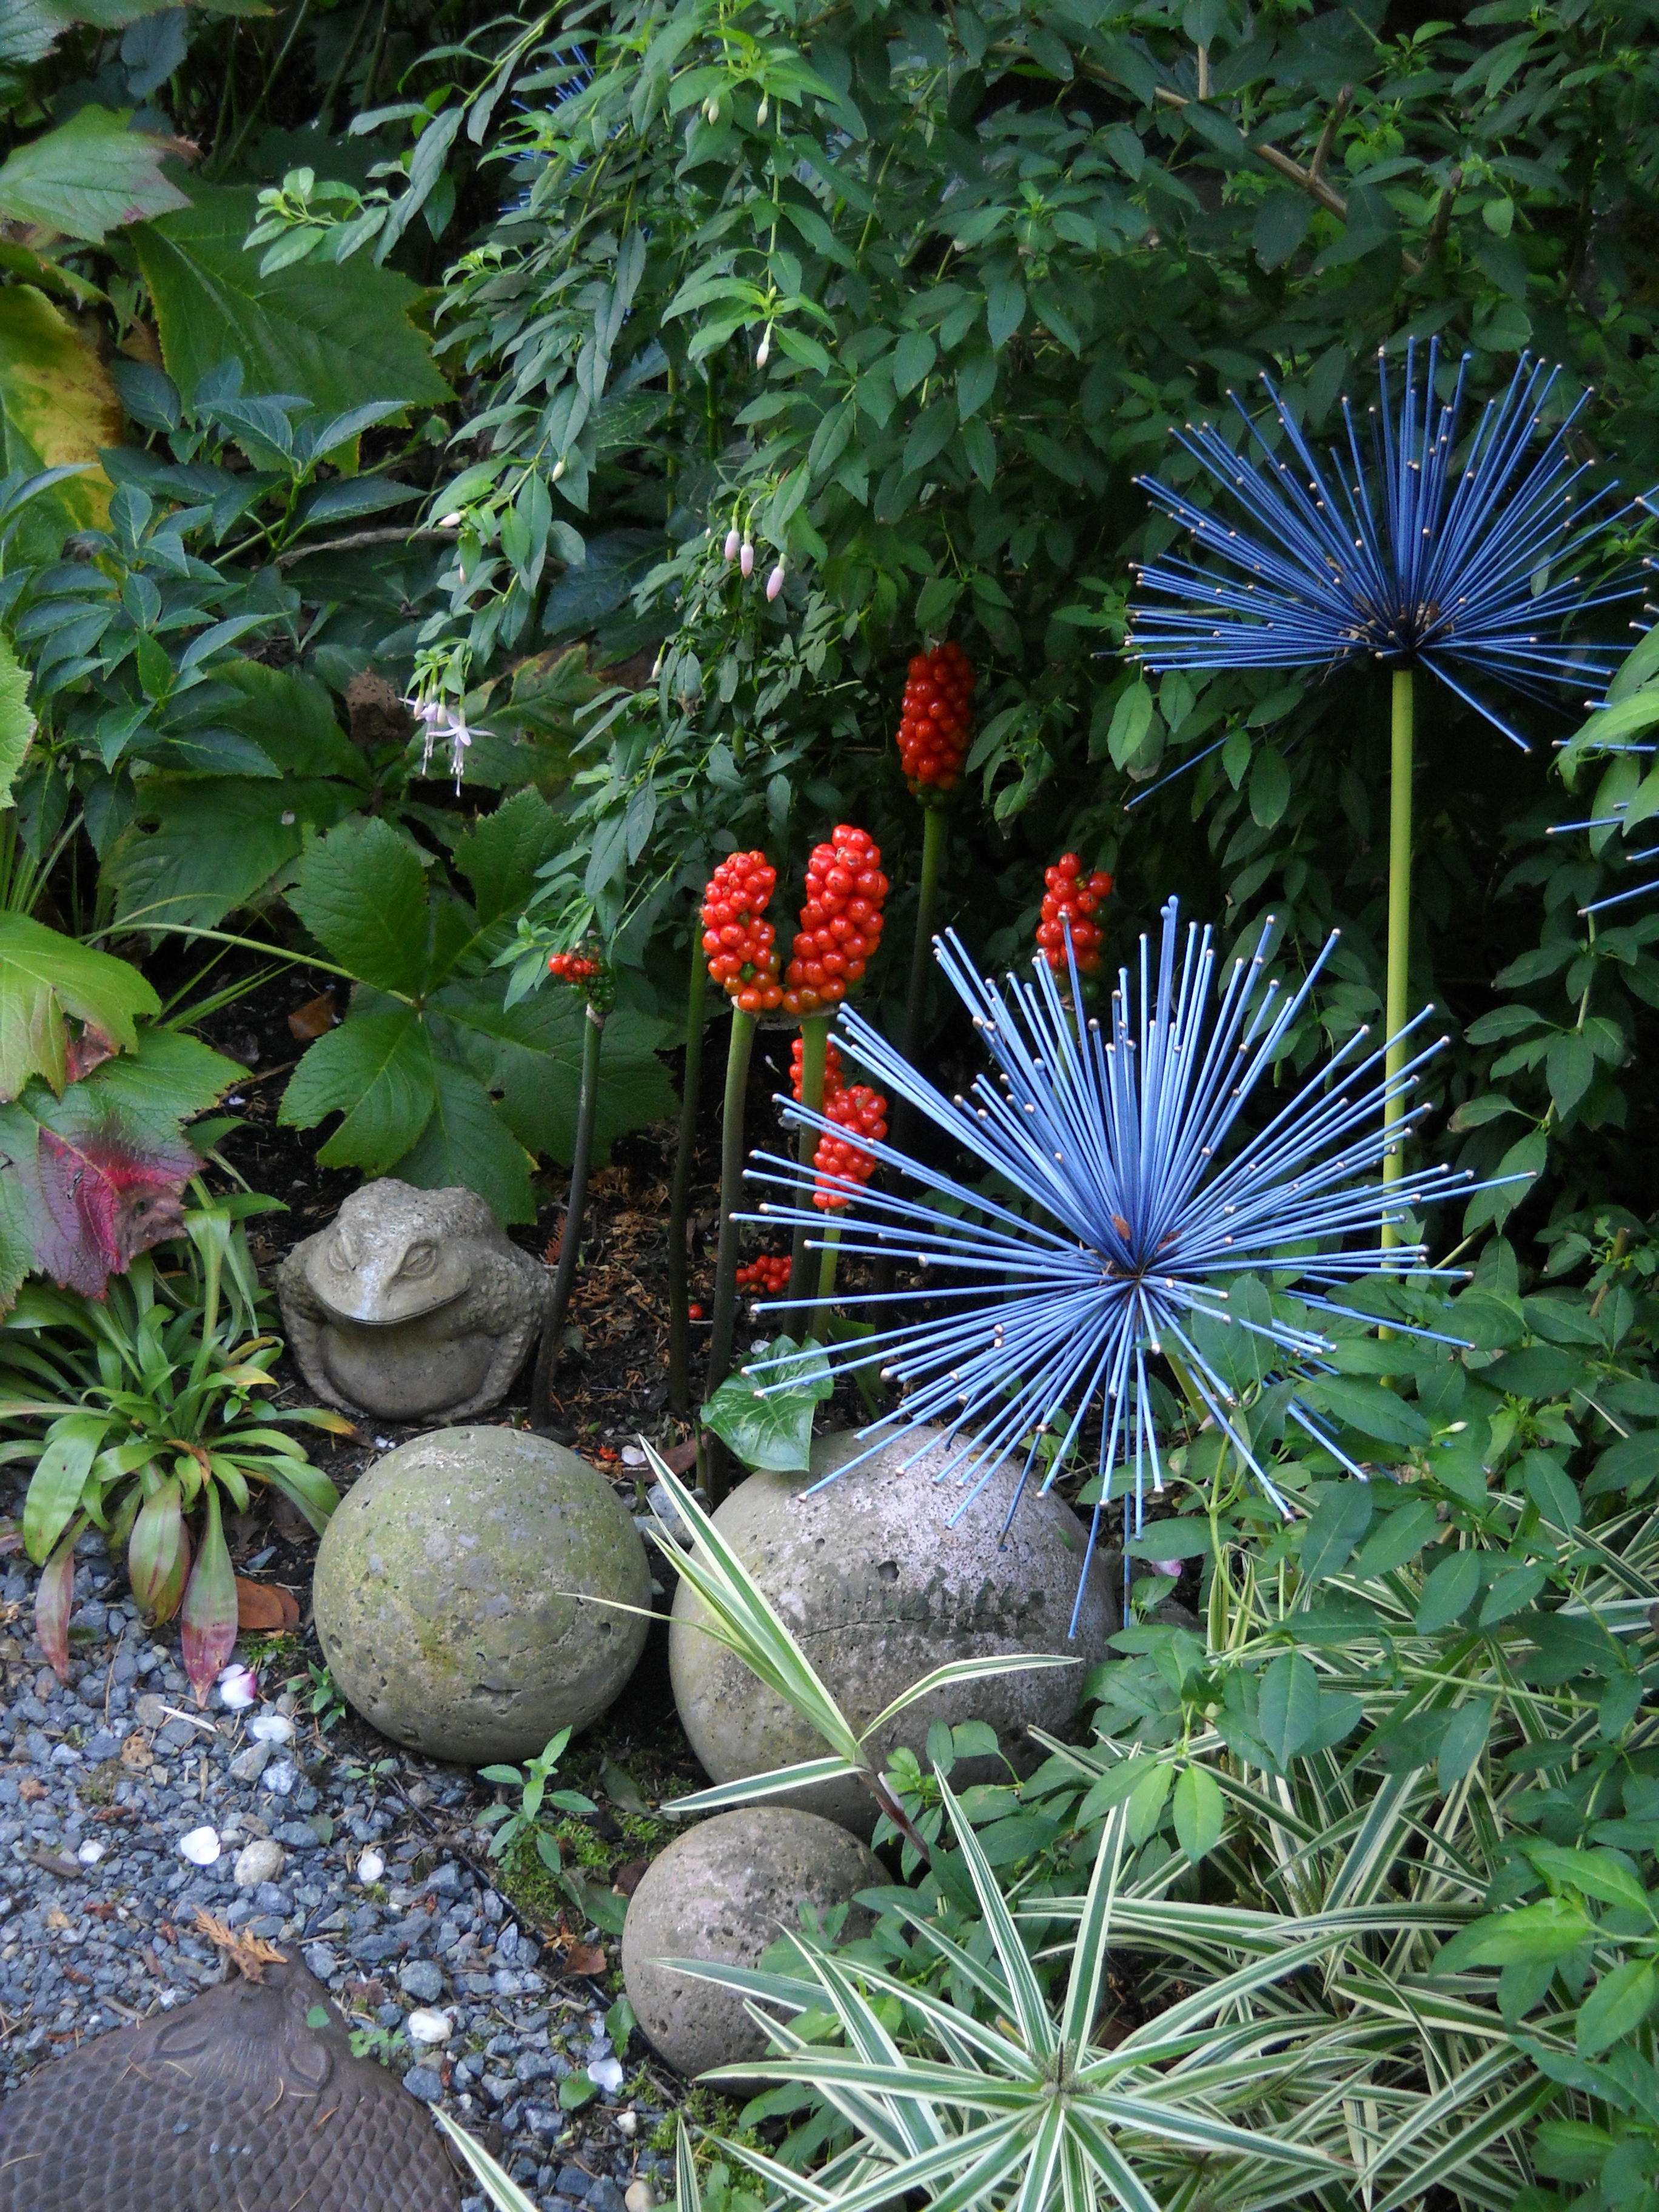 Whimsical Garden Art Photograph By Brewbooks From Near S